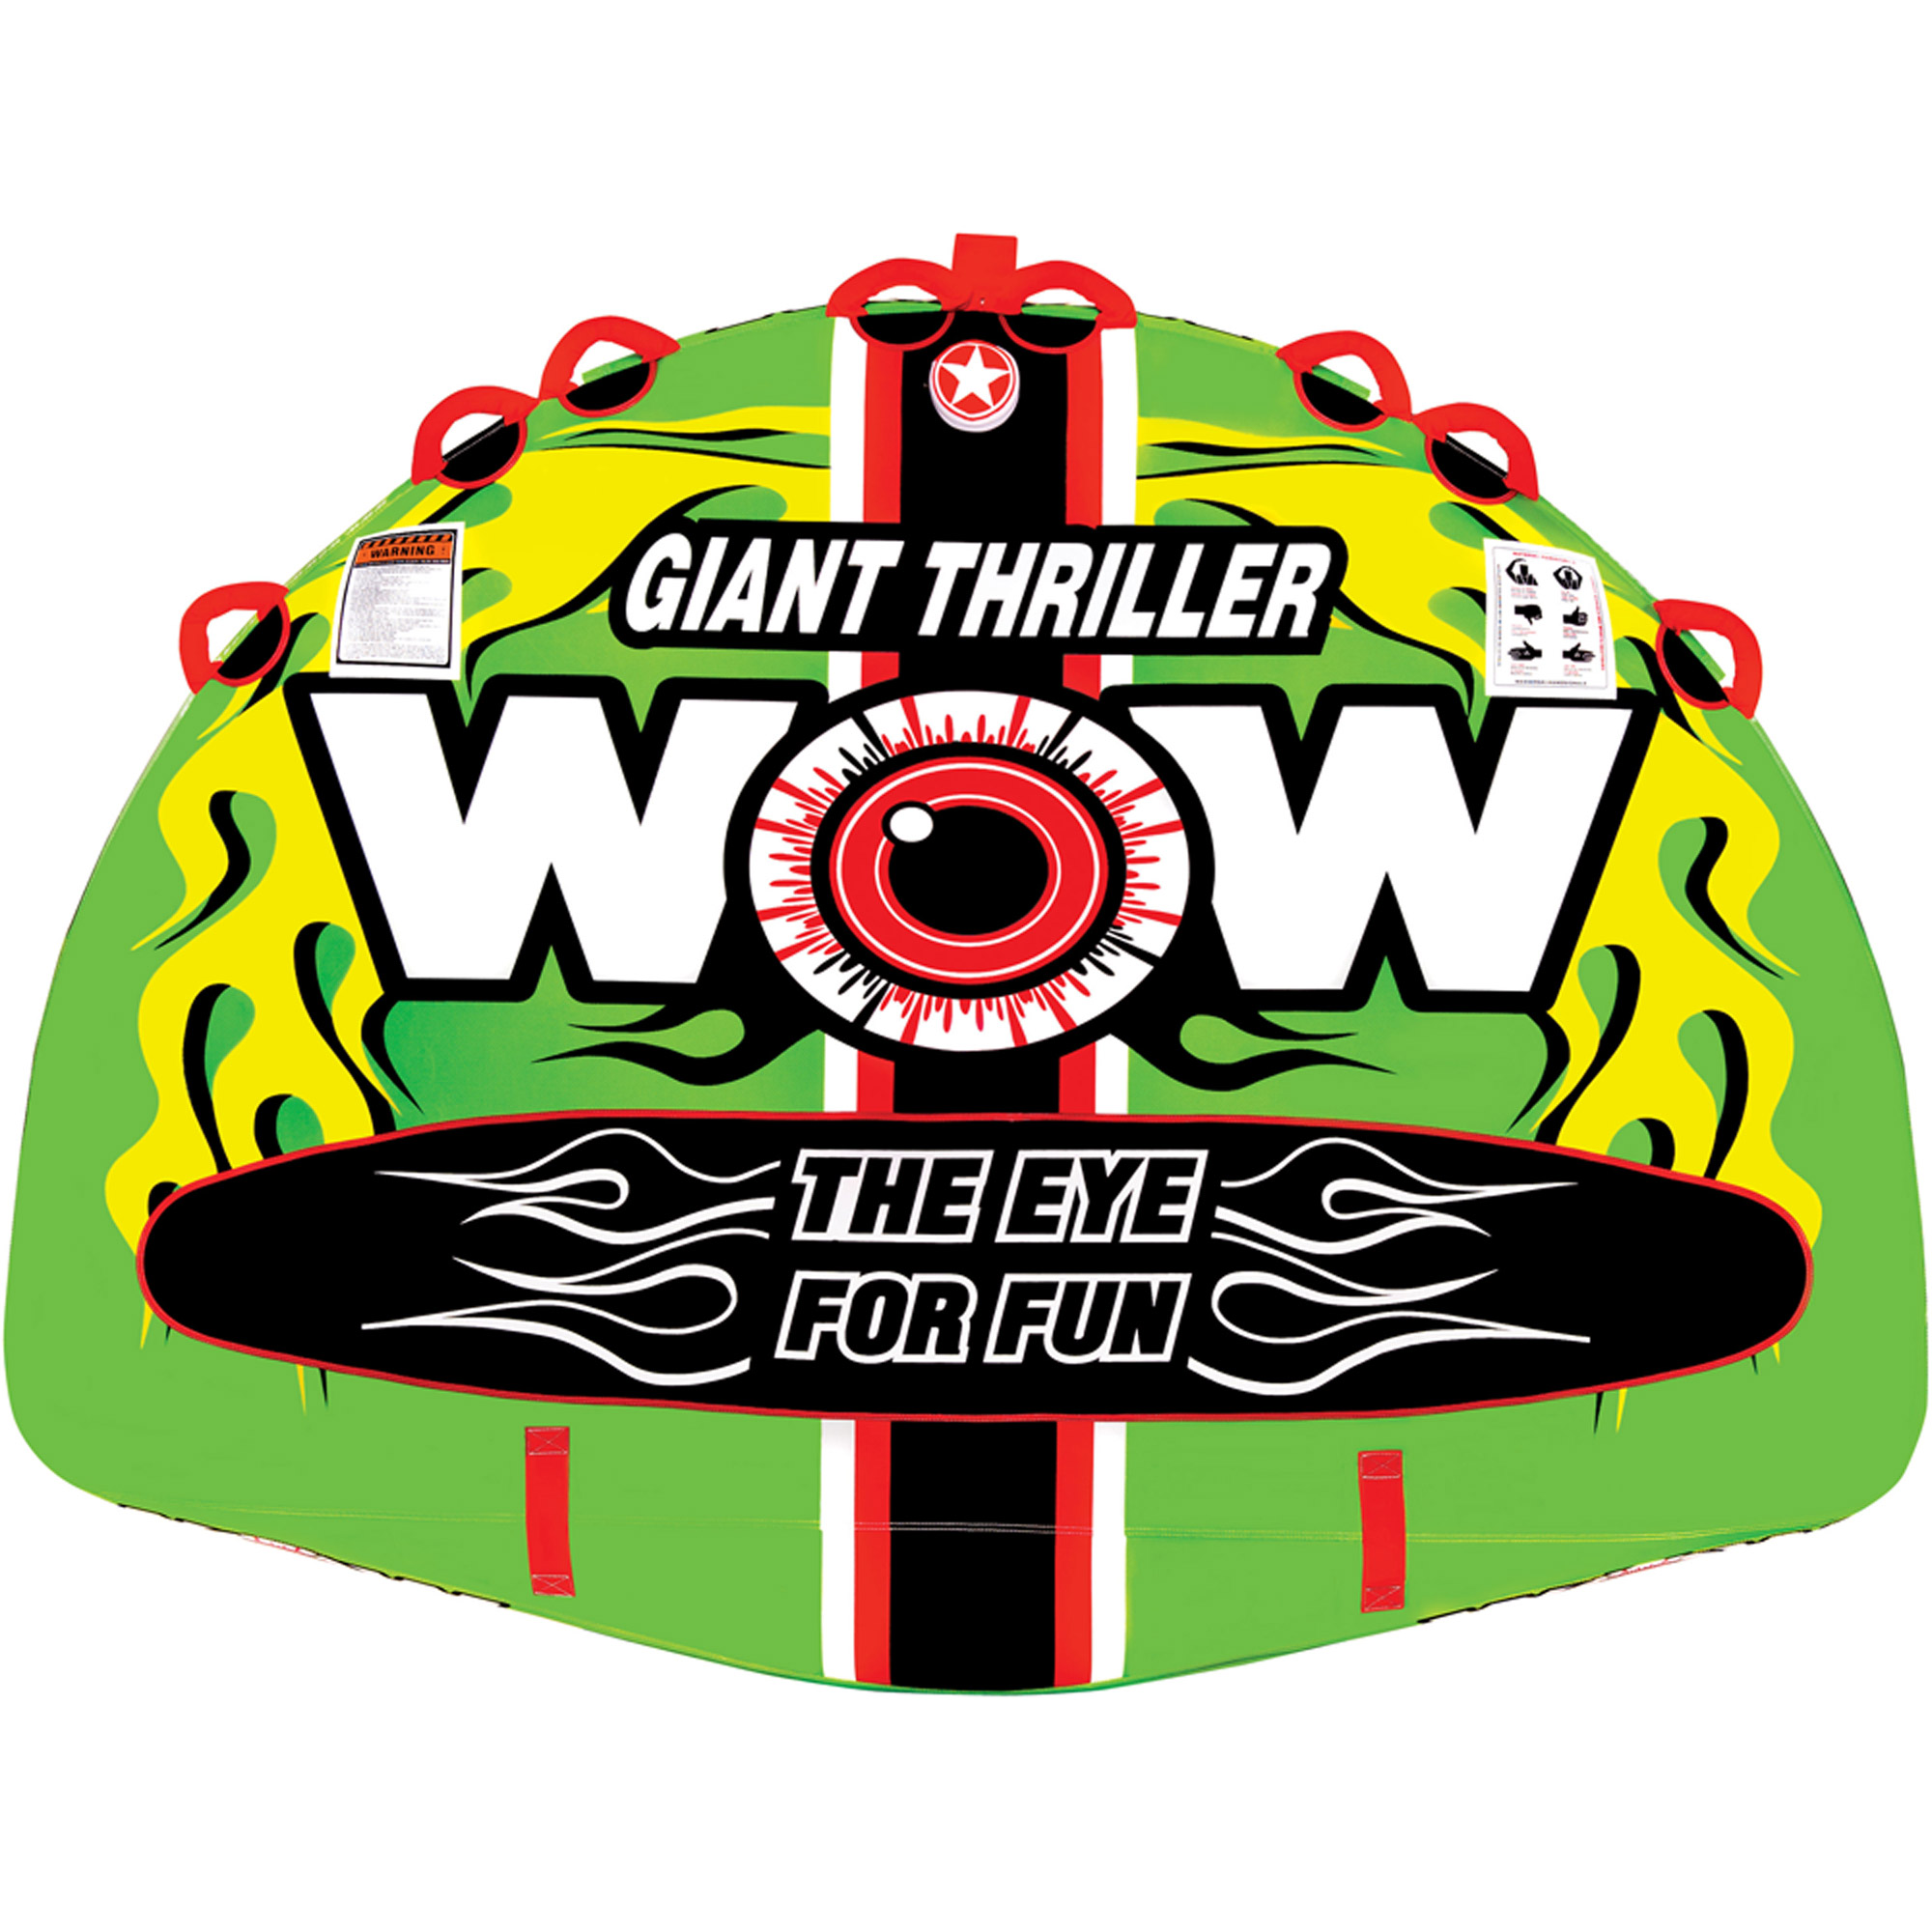 WOW Sports 11-1090 Giant Thriller Towable, 4-Rider by Generic